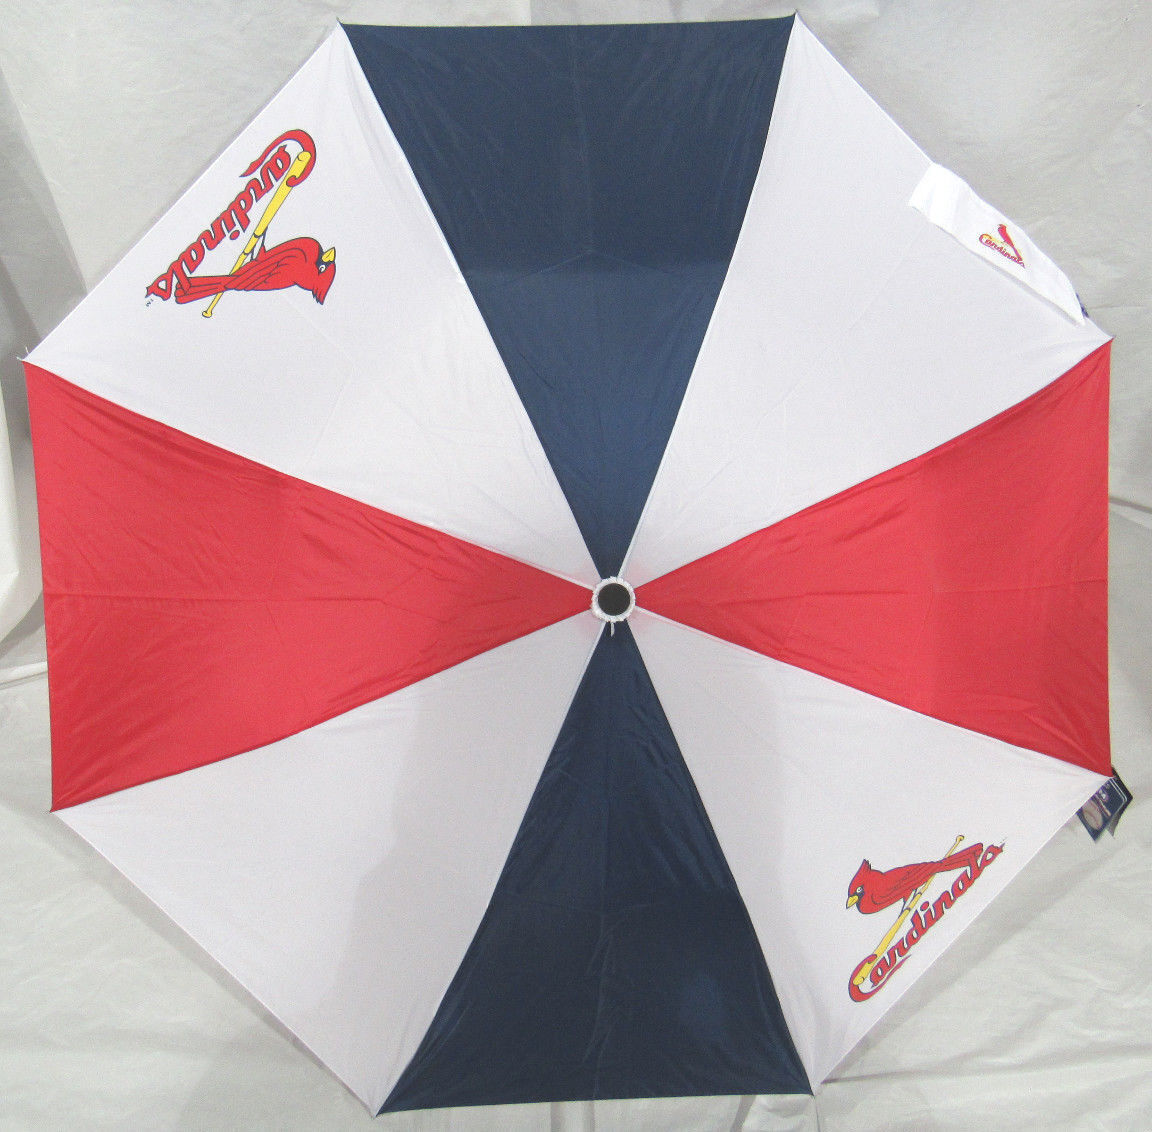 ecfe50b81286 McArthur Sports- MLB Auto Fold Umbrella St Louis Cardinals